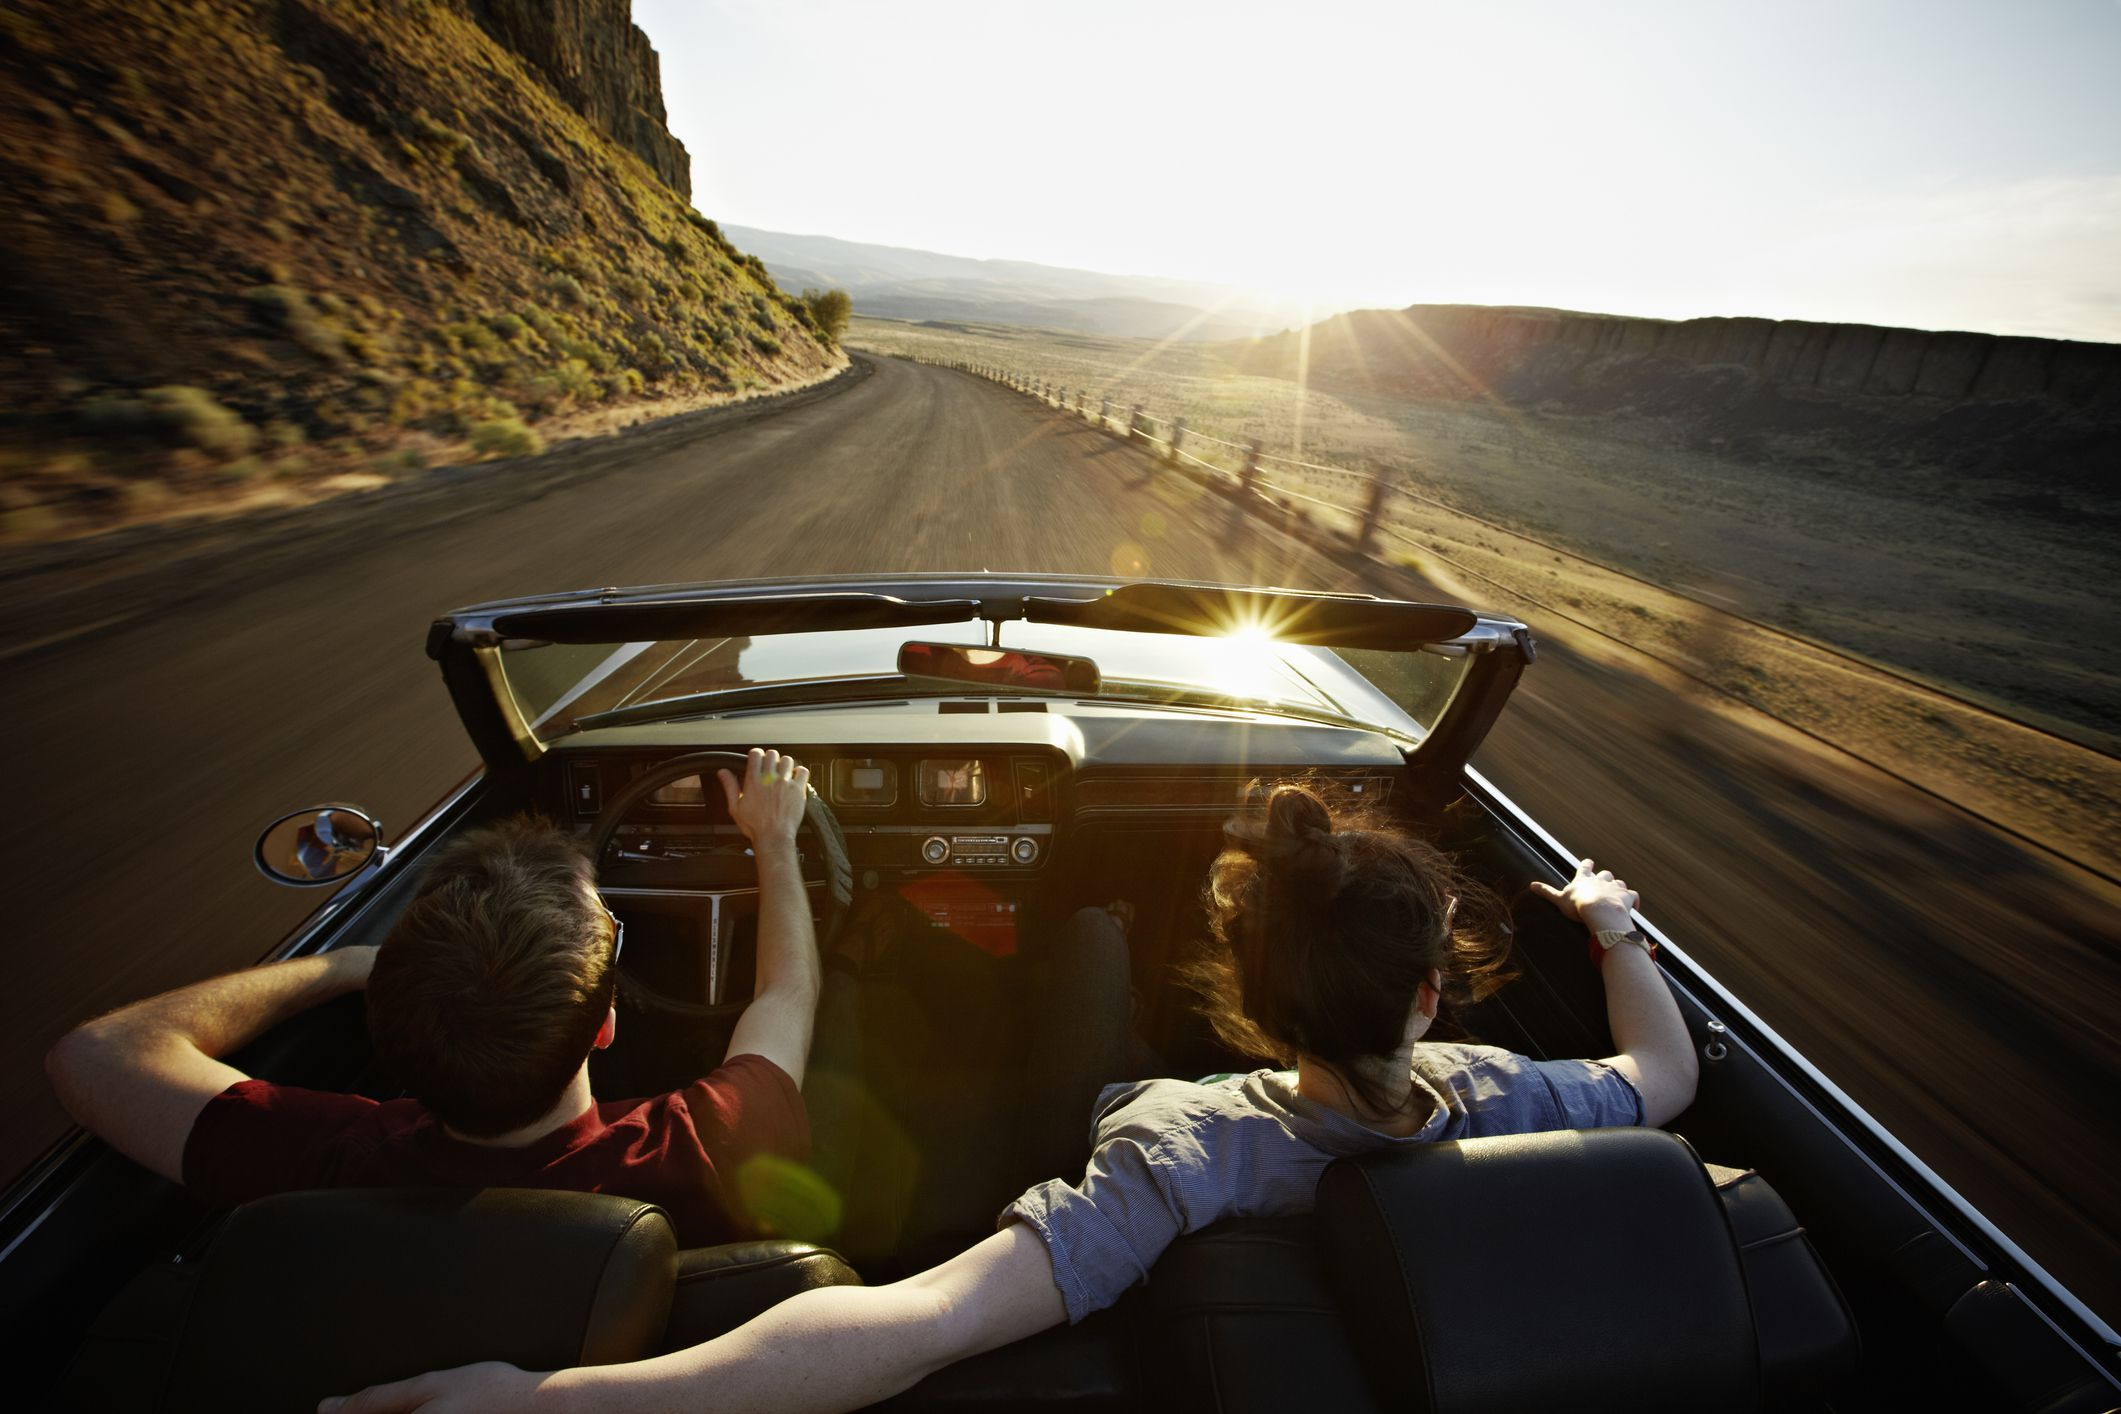 how to calculate cost of gas for a road trip